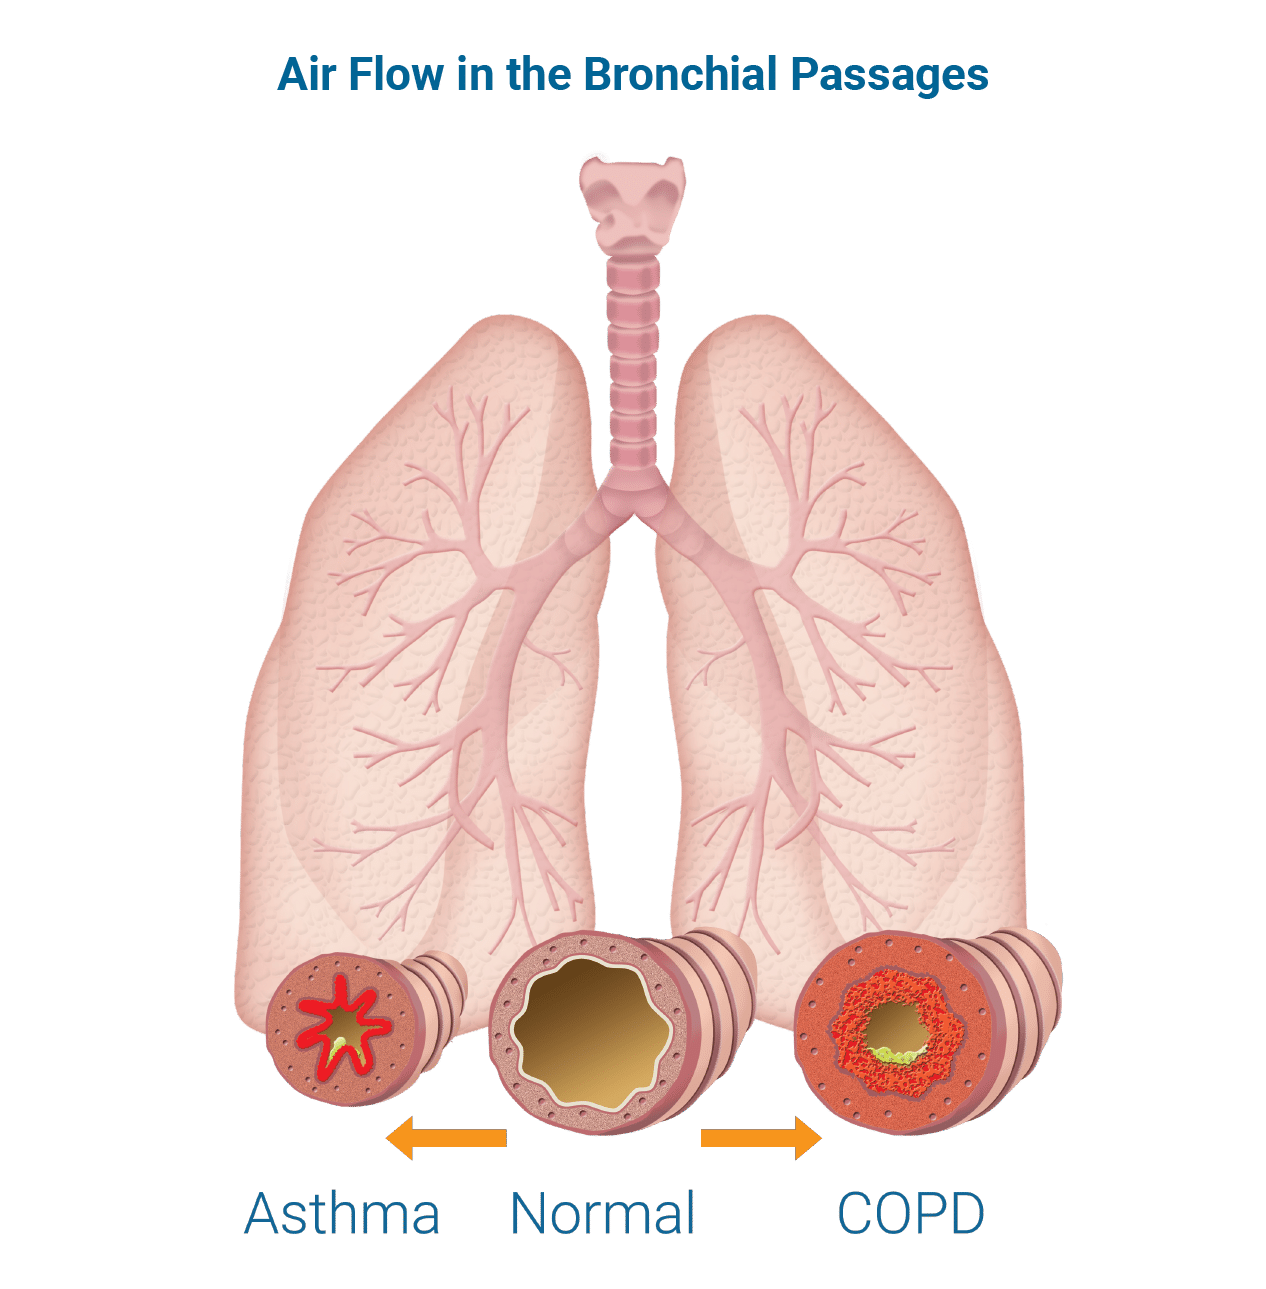 air flow in the bronchial passages, asthma, normal, COPD